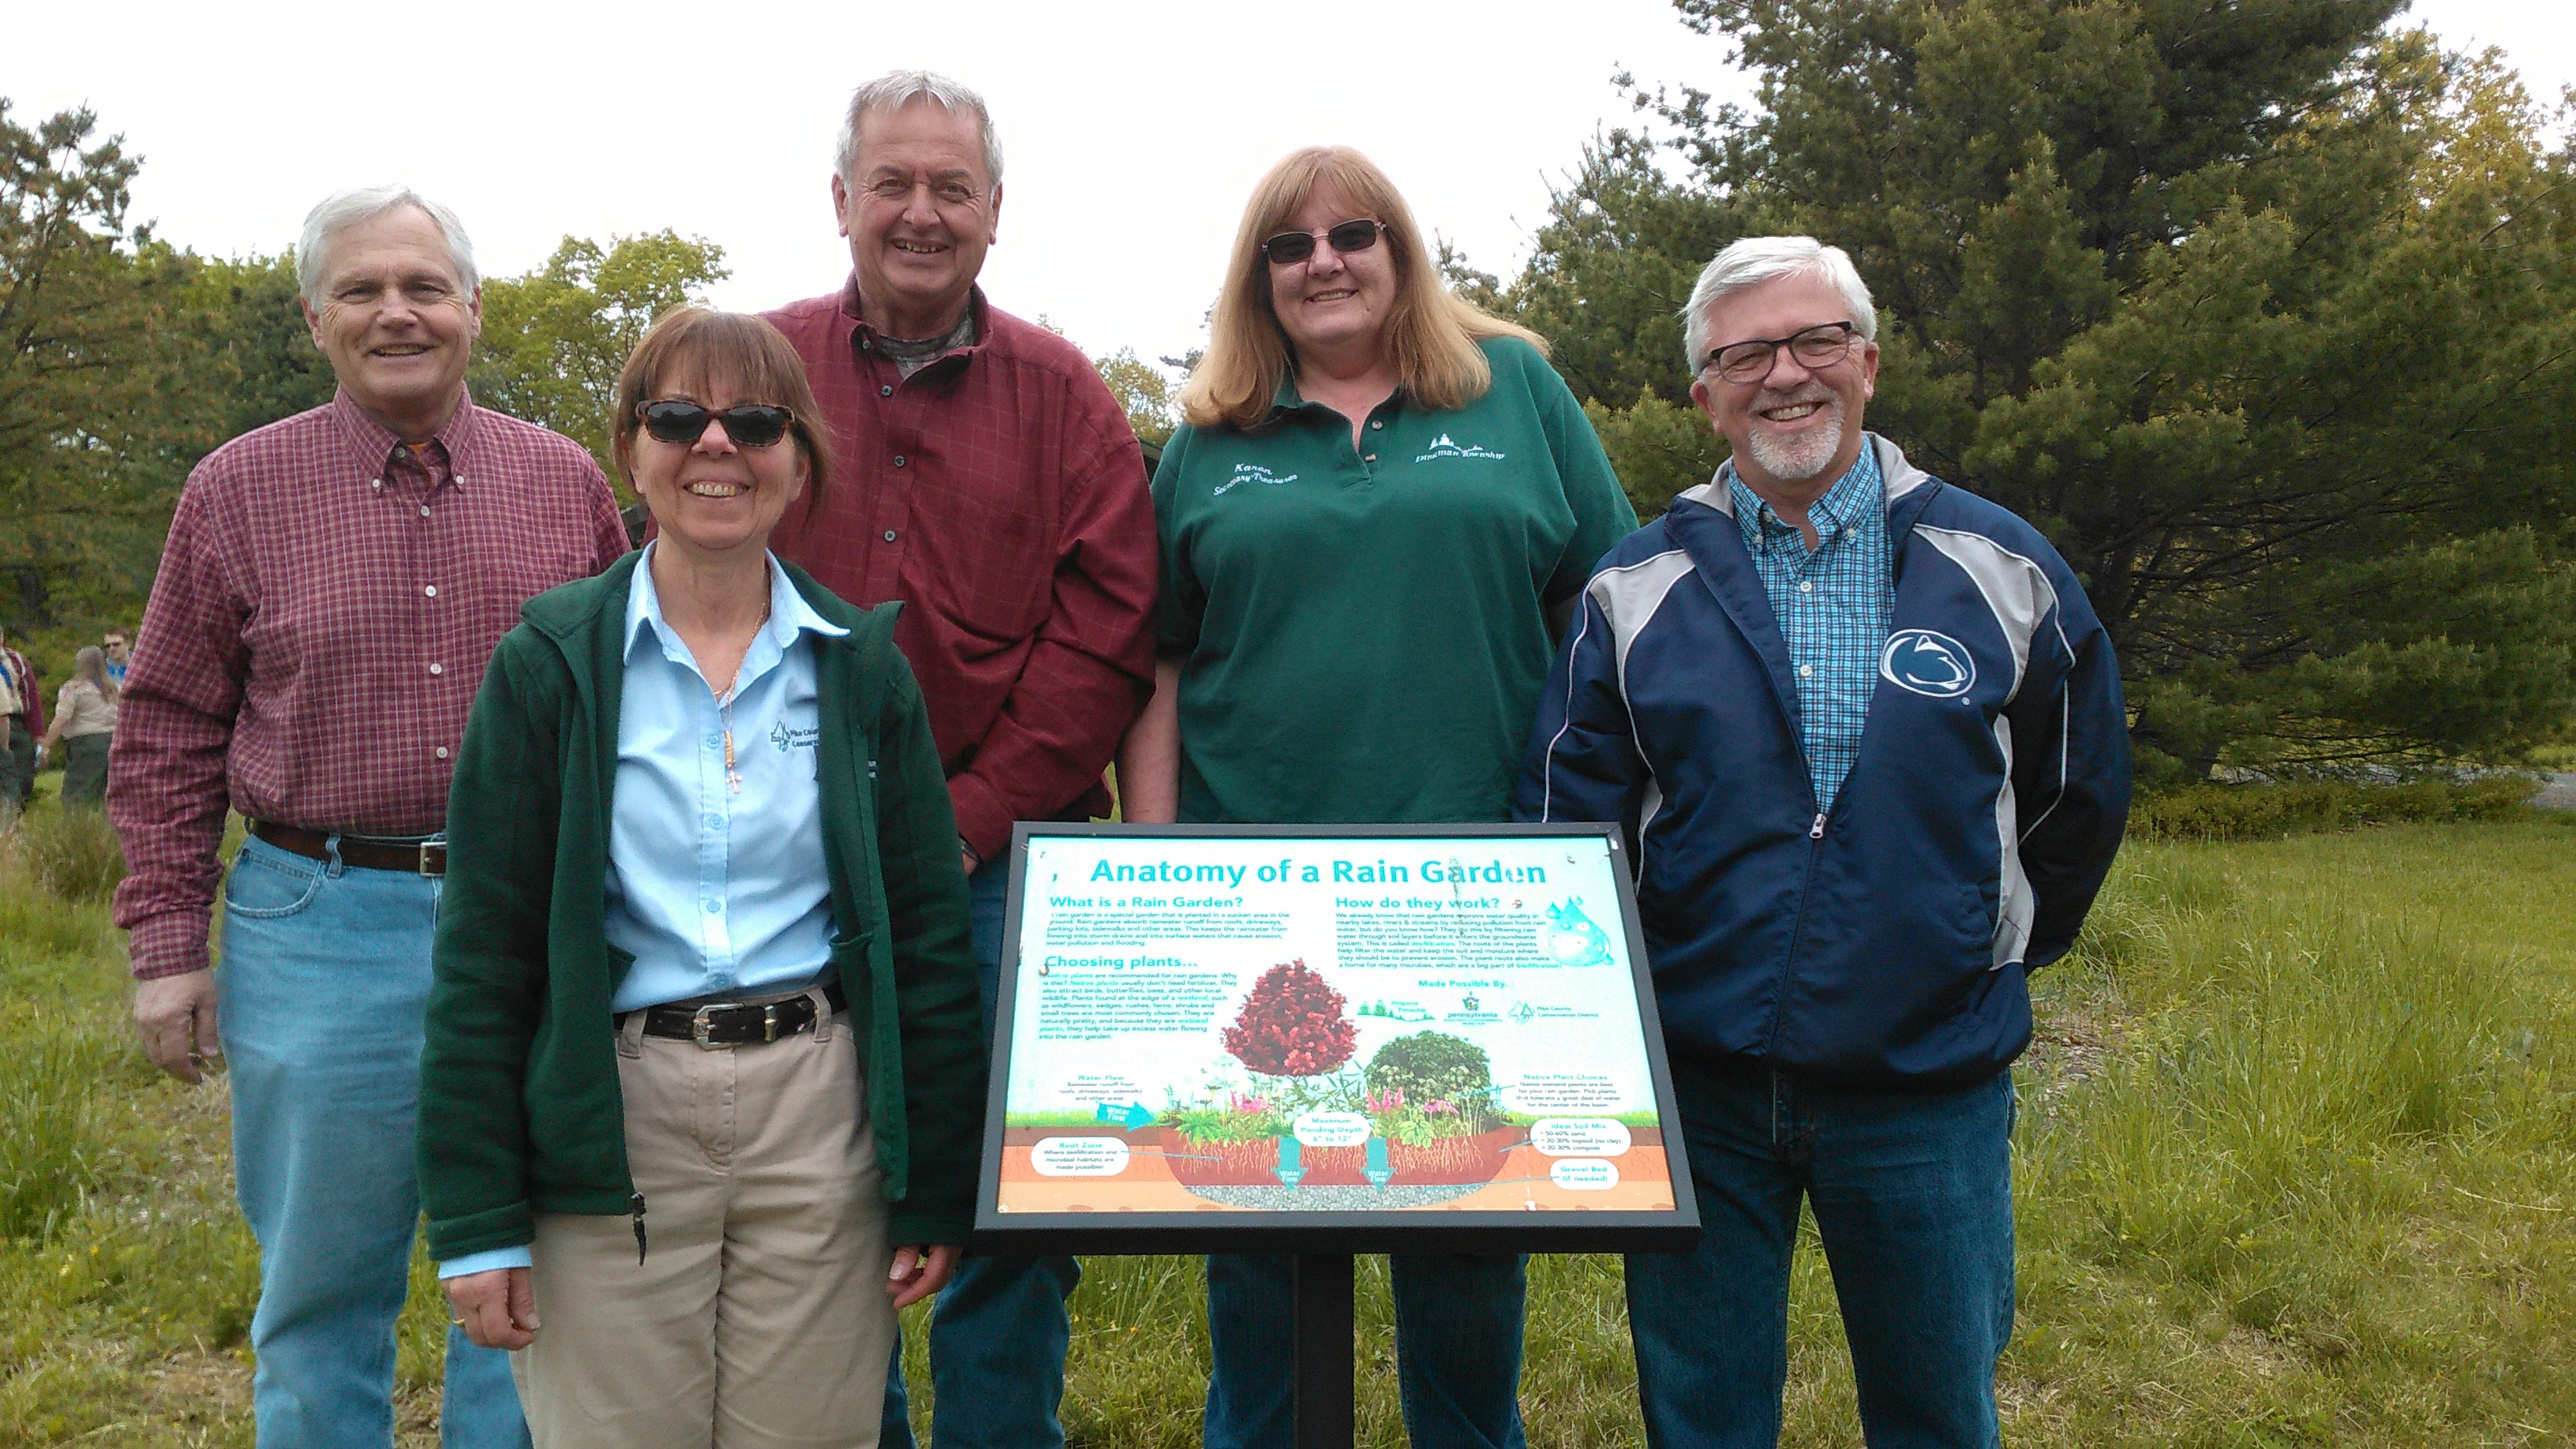 Photo of Pike County officials at the Bridge Preserve Celebration with a newly installed rain garden sign.